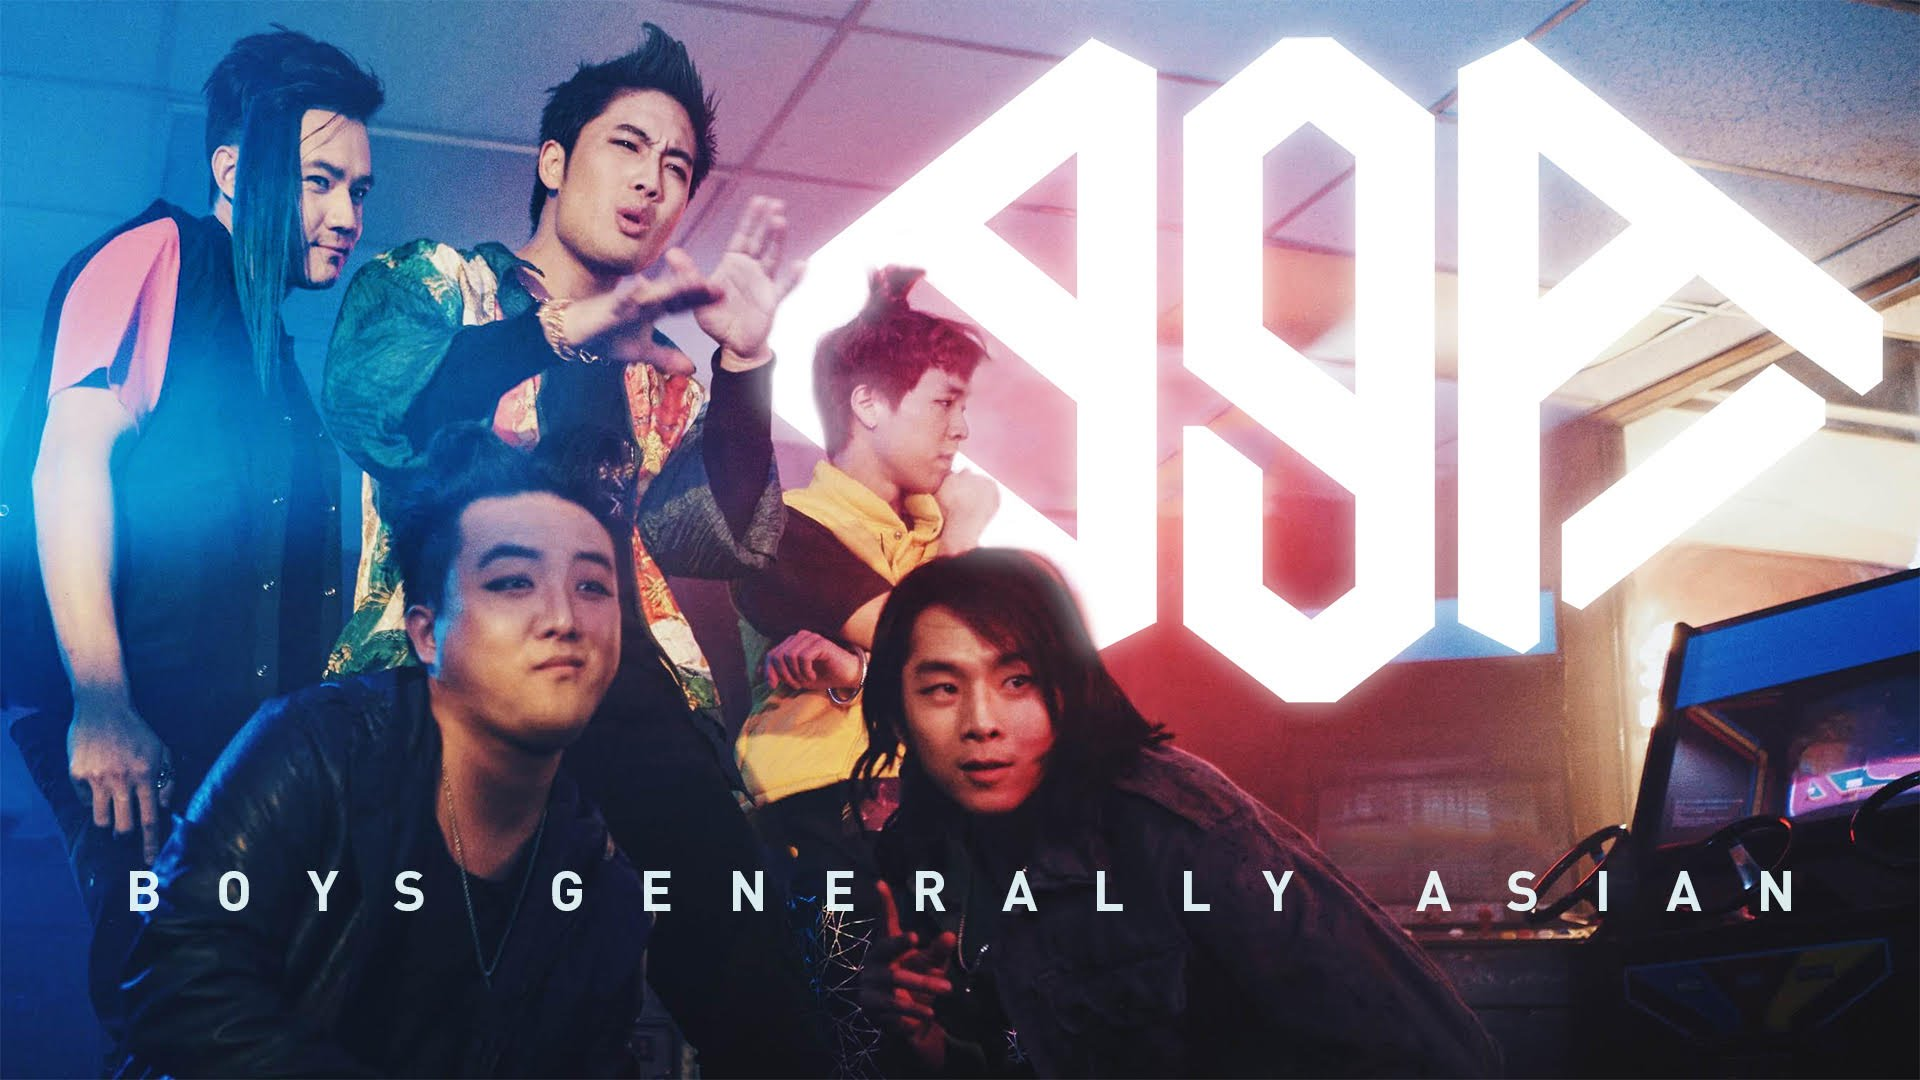 YouTube promo photo - Boys Generally Asian, a parody K-Pop boyband consisting of digital media stars. Left to right: (top) Philip Wang, Ryan Higa, Jun Sung Ahn, (bottom) David Choi, Justin Chon.